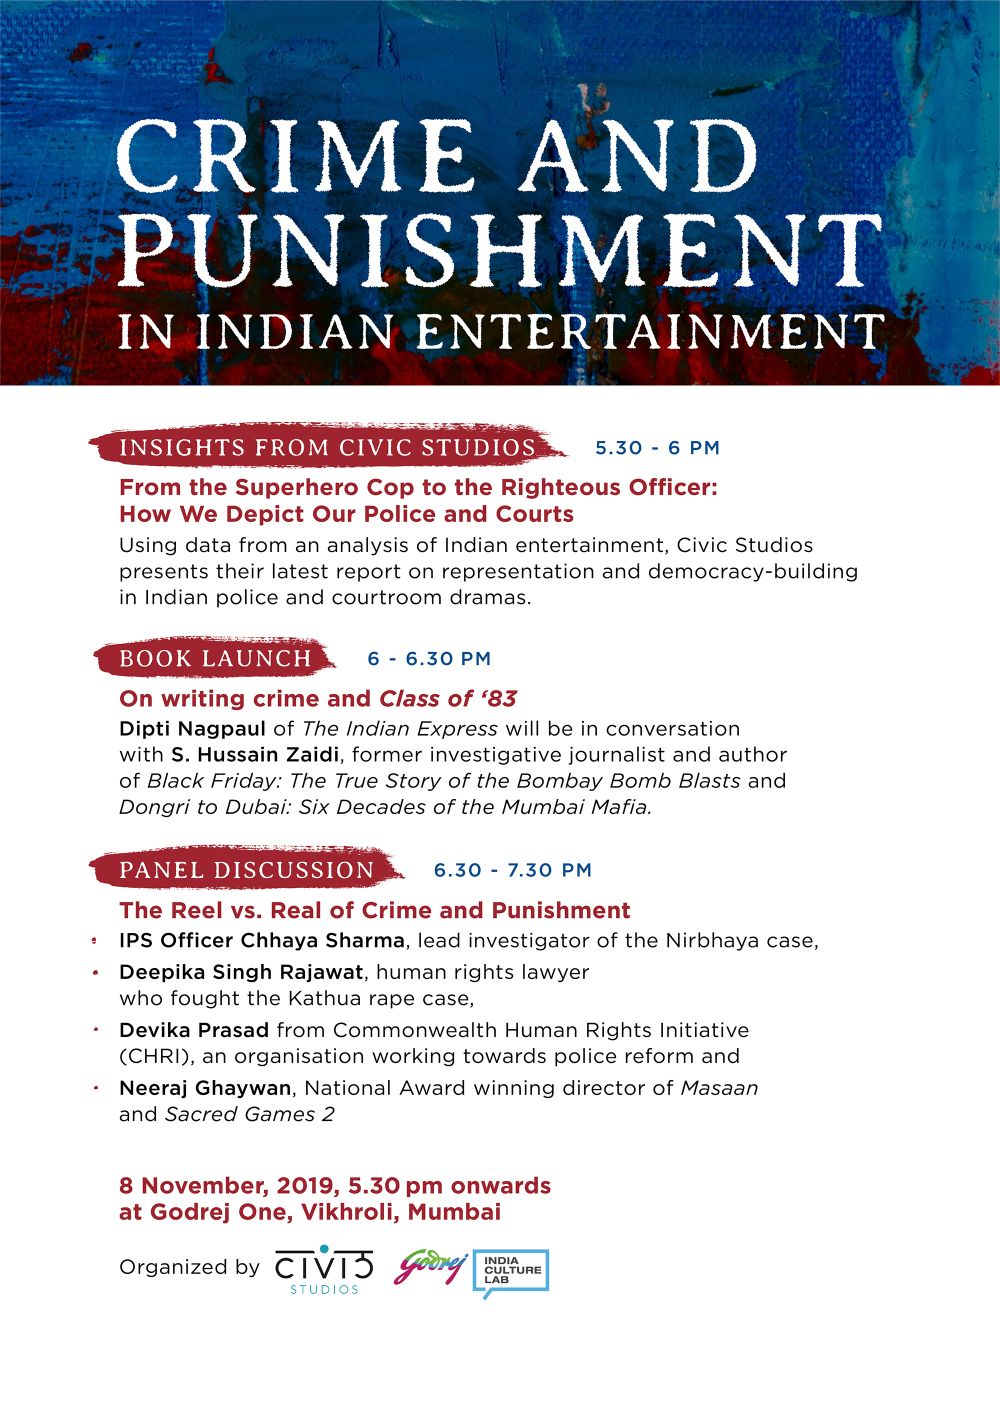 Crime and Punishment in Indian Entertainment by Civic Studios